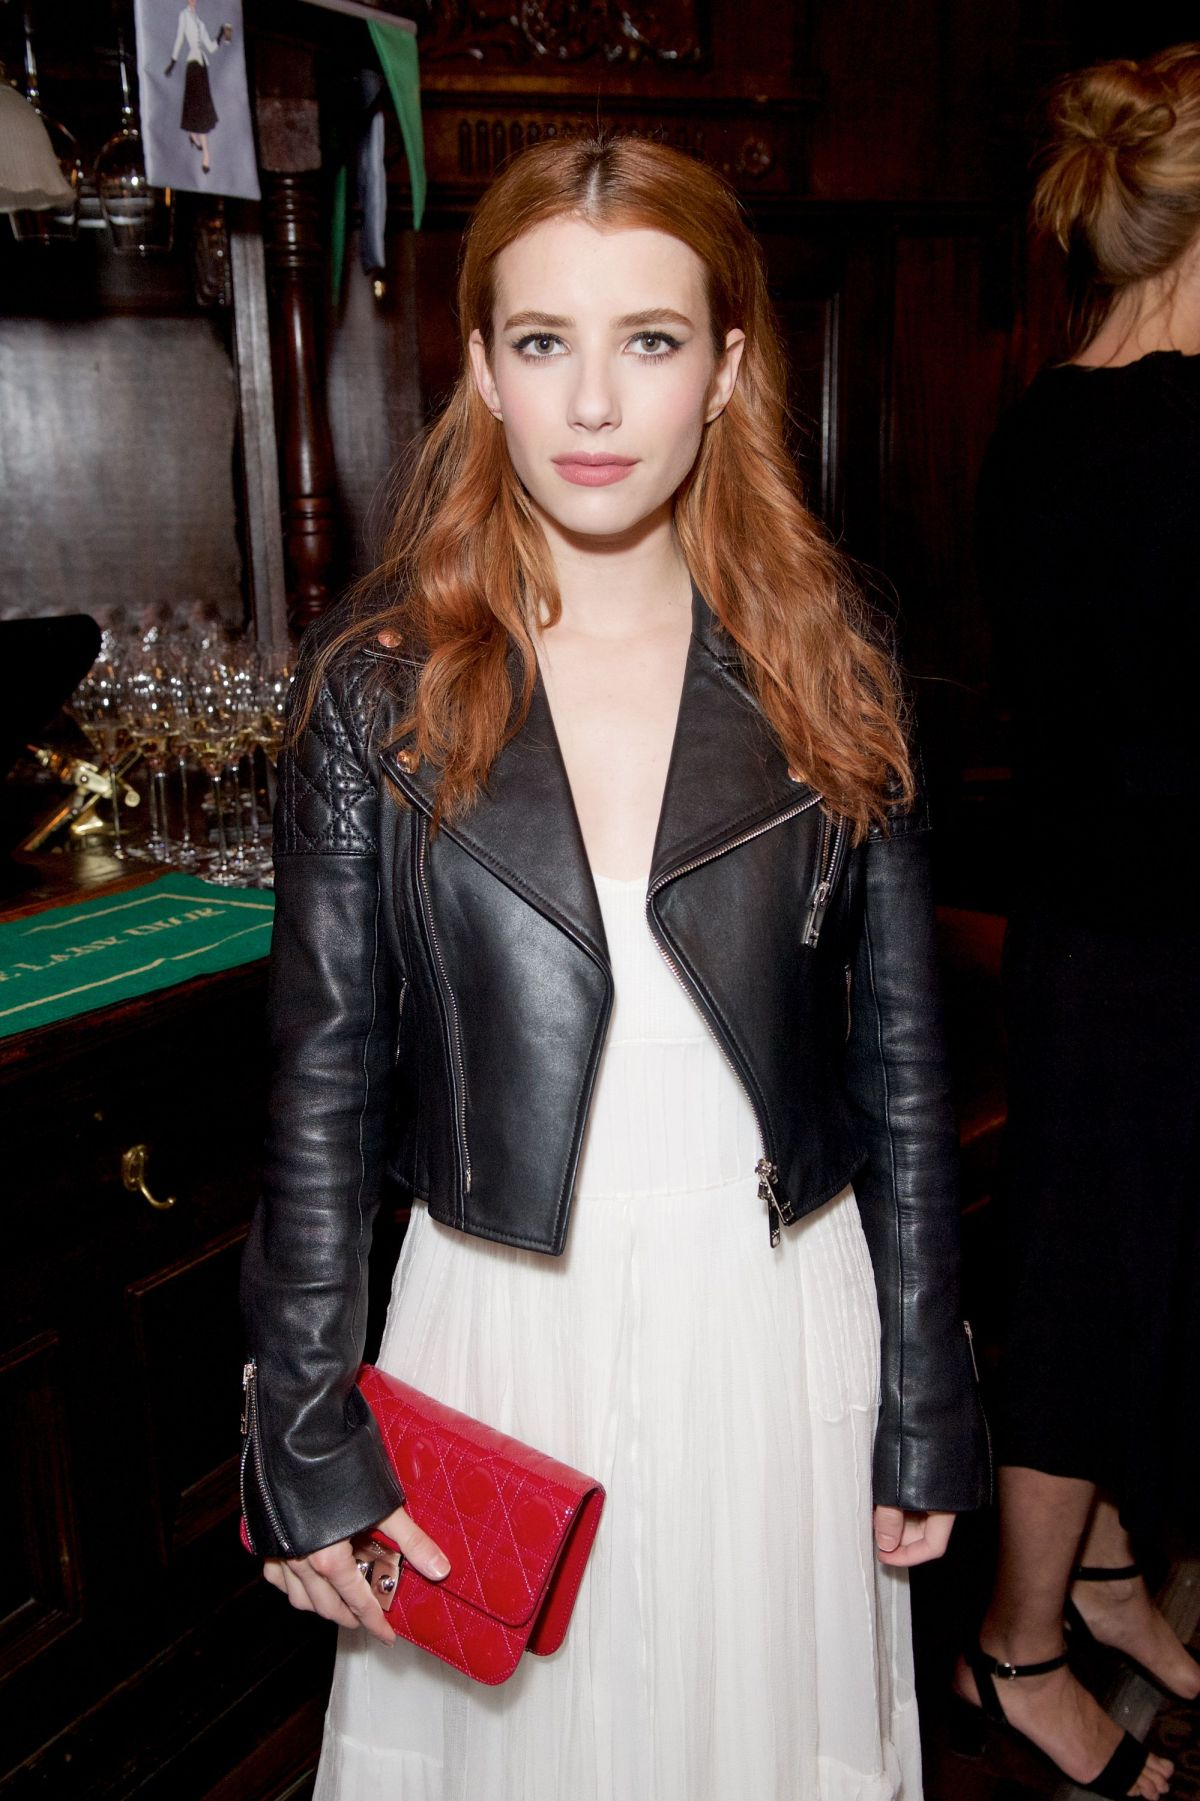 EMMA ROBERTS at Lady Dior Party in London 05/30/2016